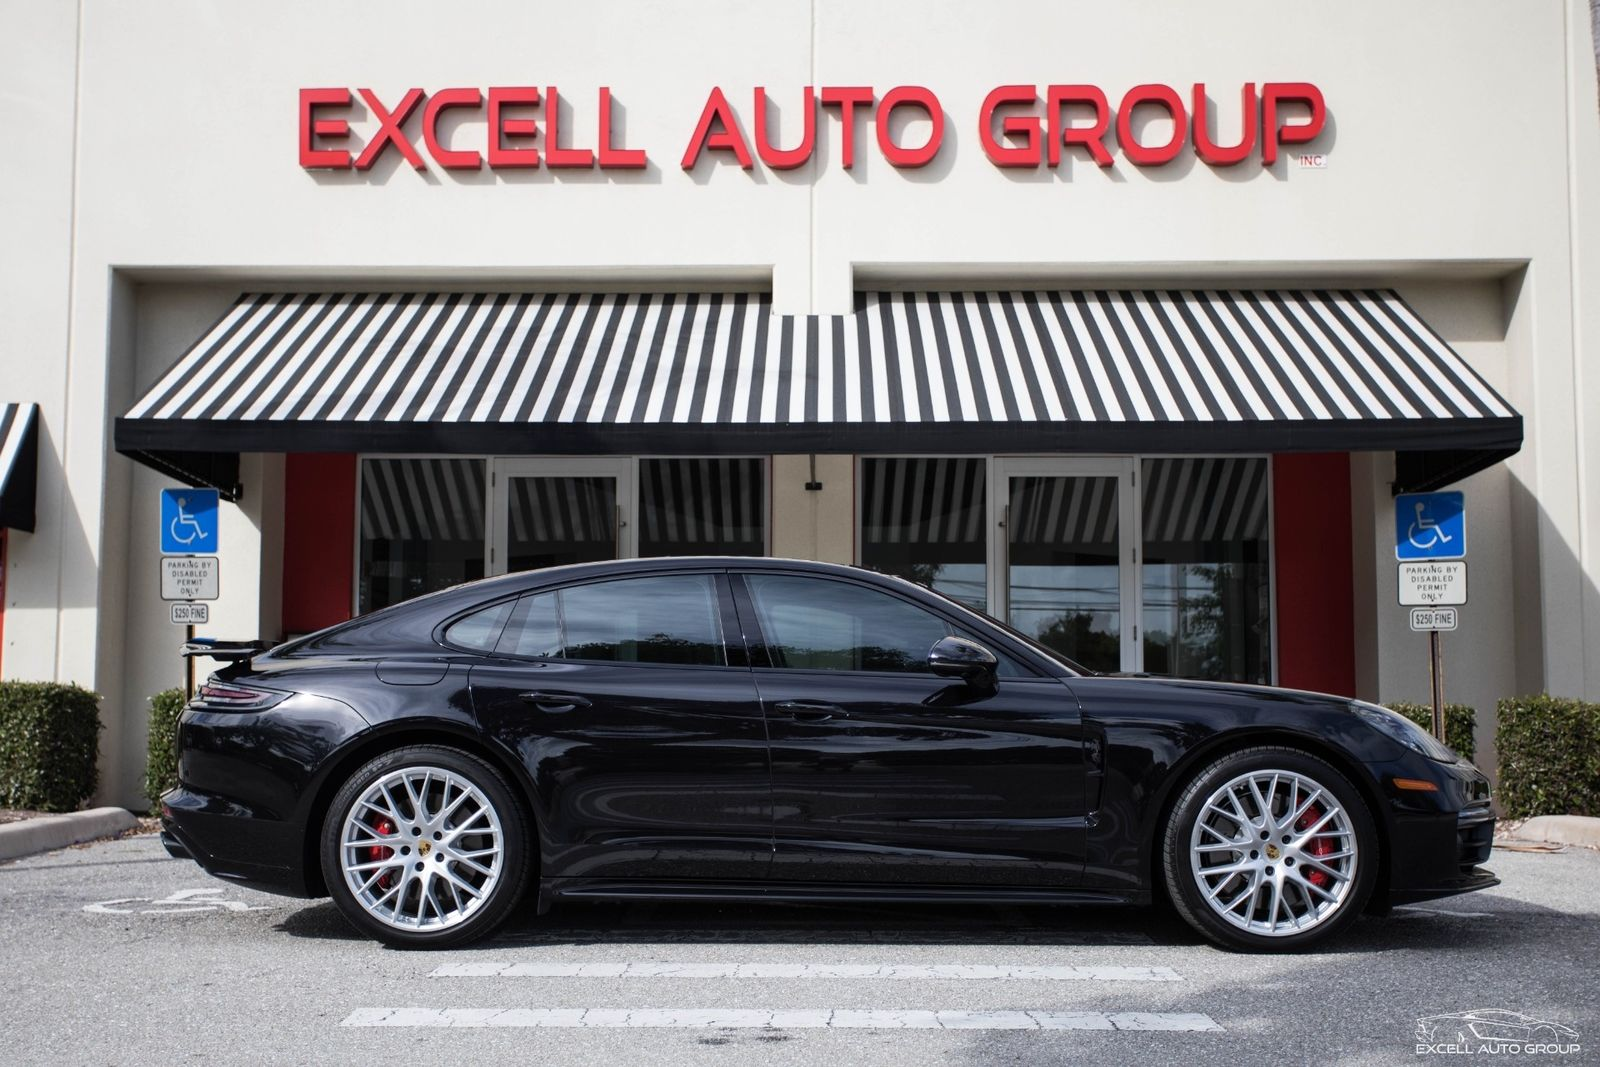 Amazing 2017 Porsche Panamera Turbo 3600 Miles Jet Black Metallic Sedan V8 4l A 2018 2019